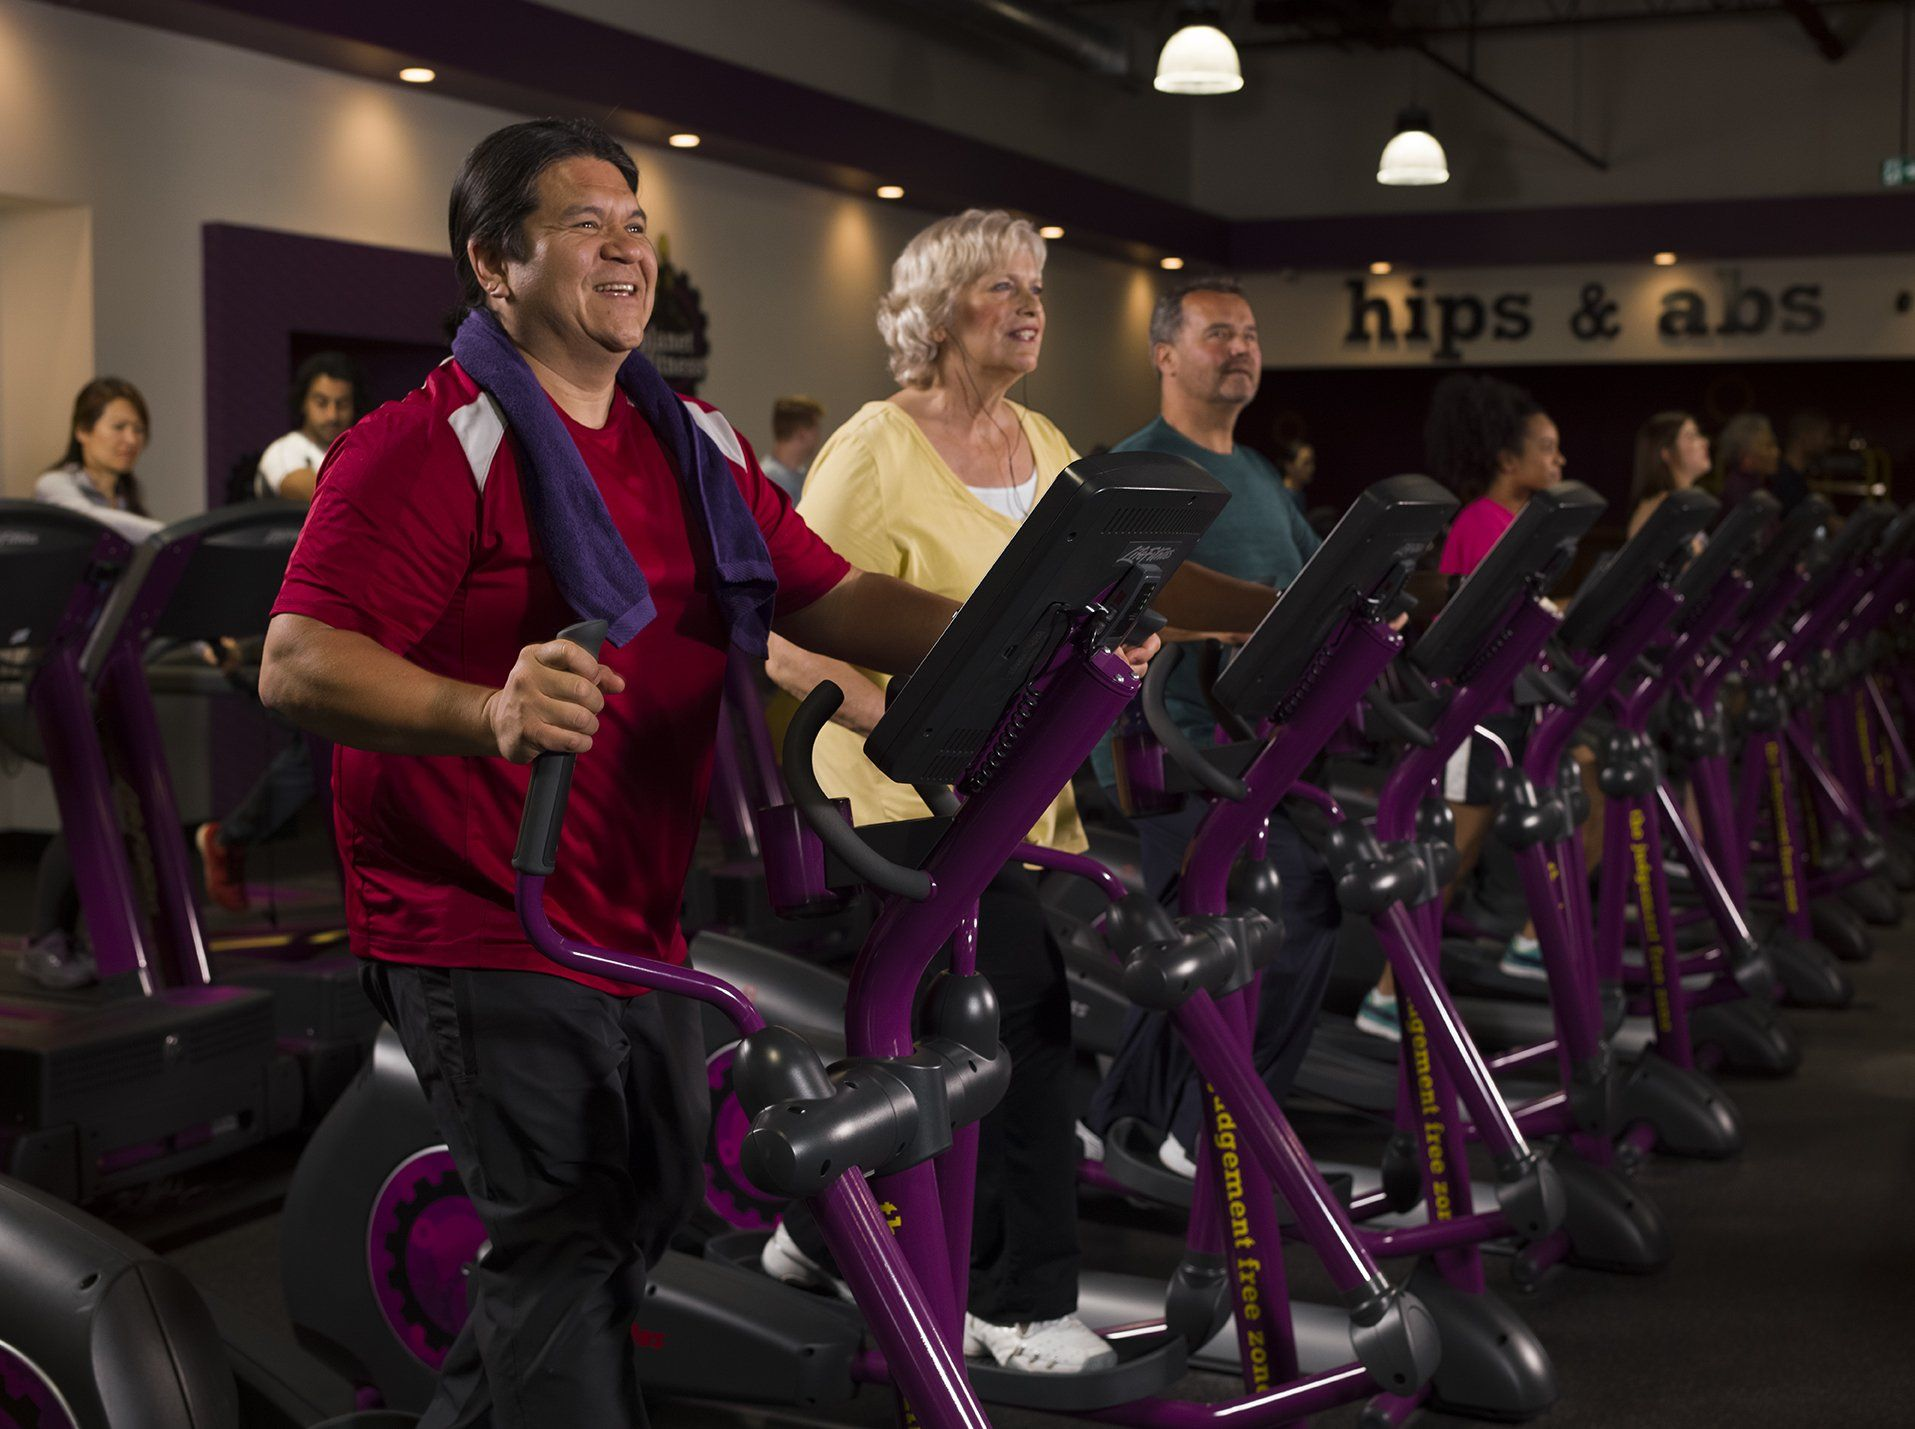 Tired Of Using The Same Cardio Machines At The Gym Mix It Up Planet Fitness Planet Fitness Workout Cardio Machines Planet Fitness Workout Plan